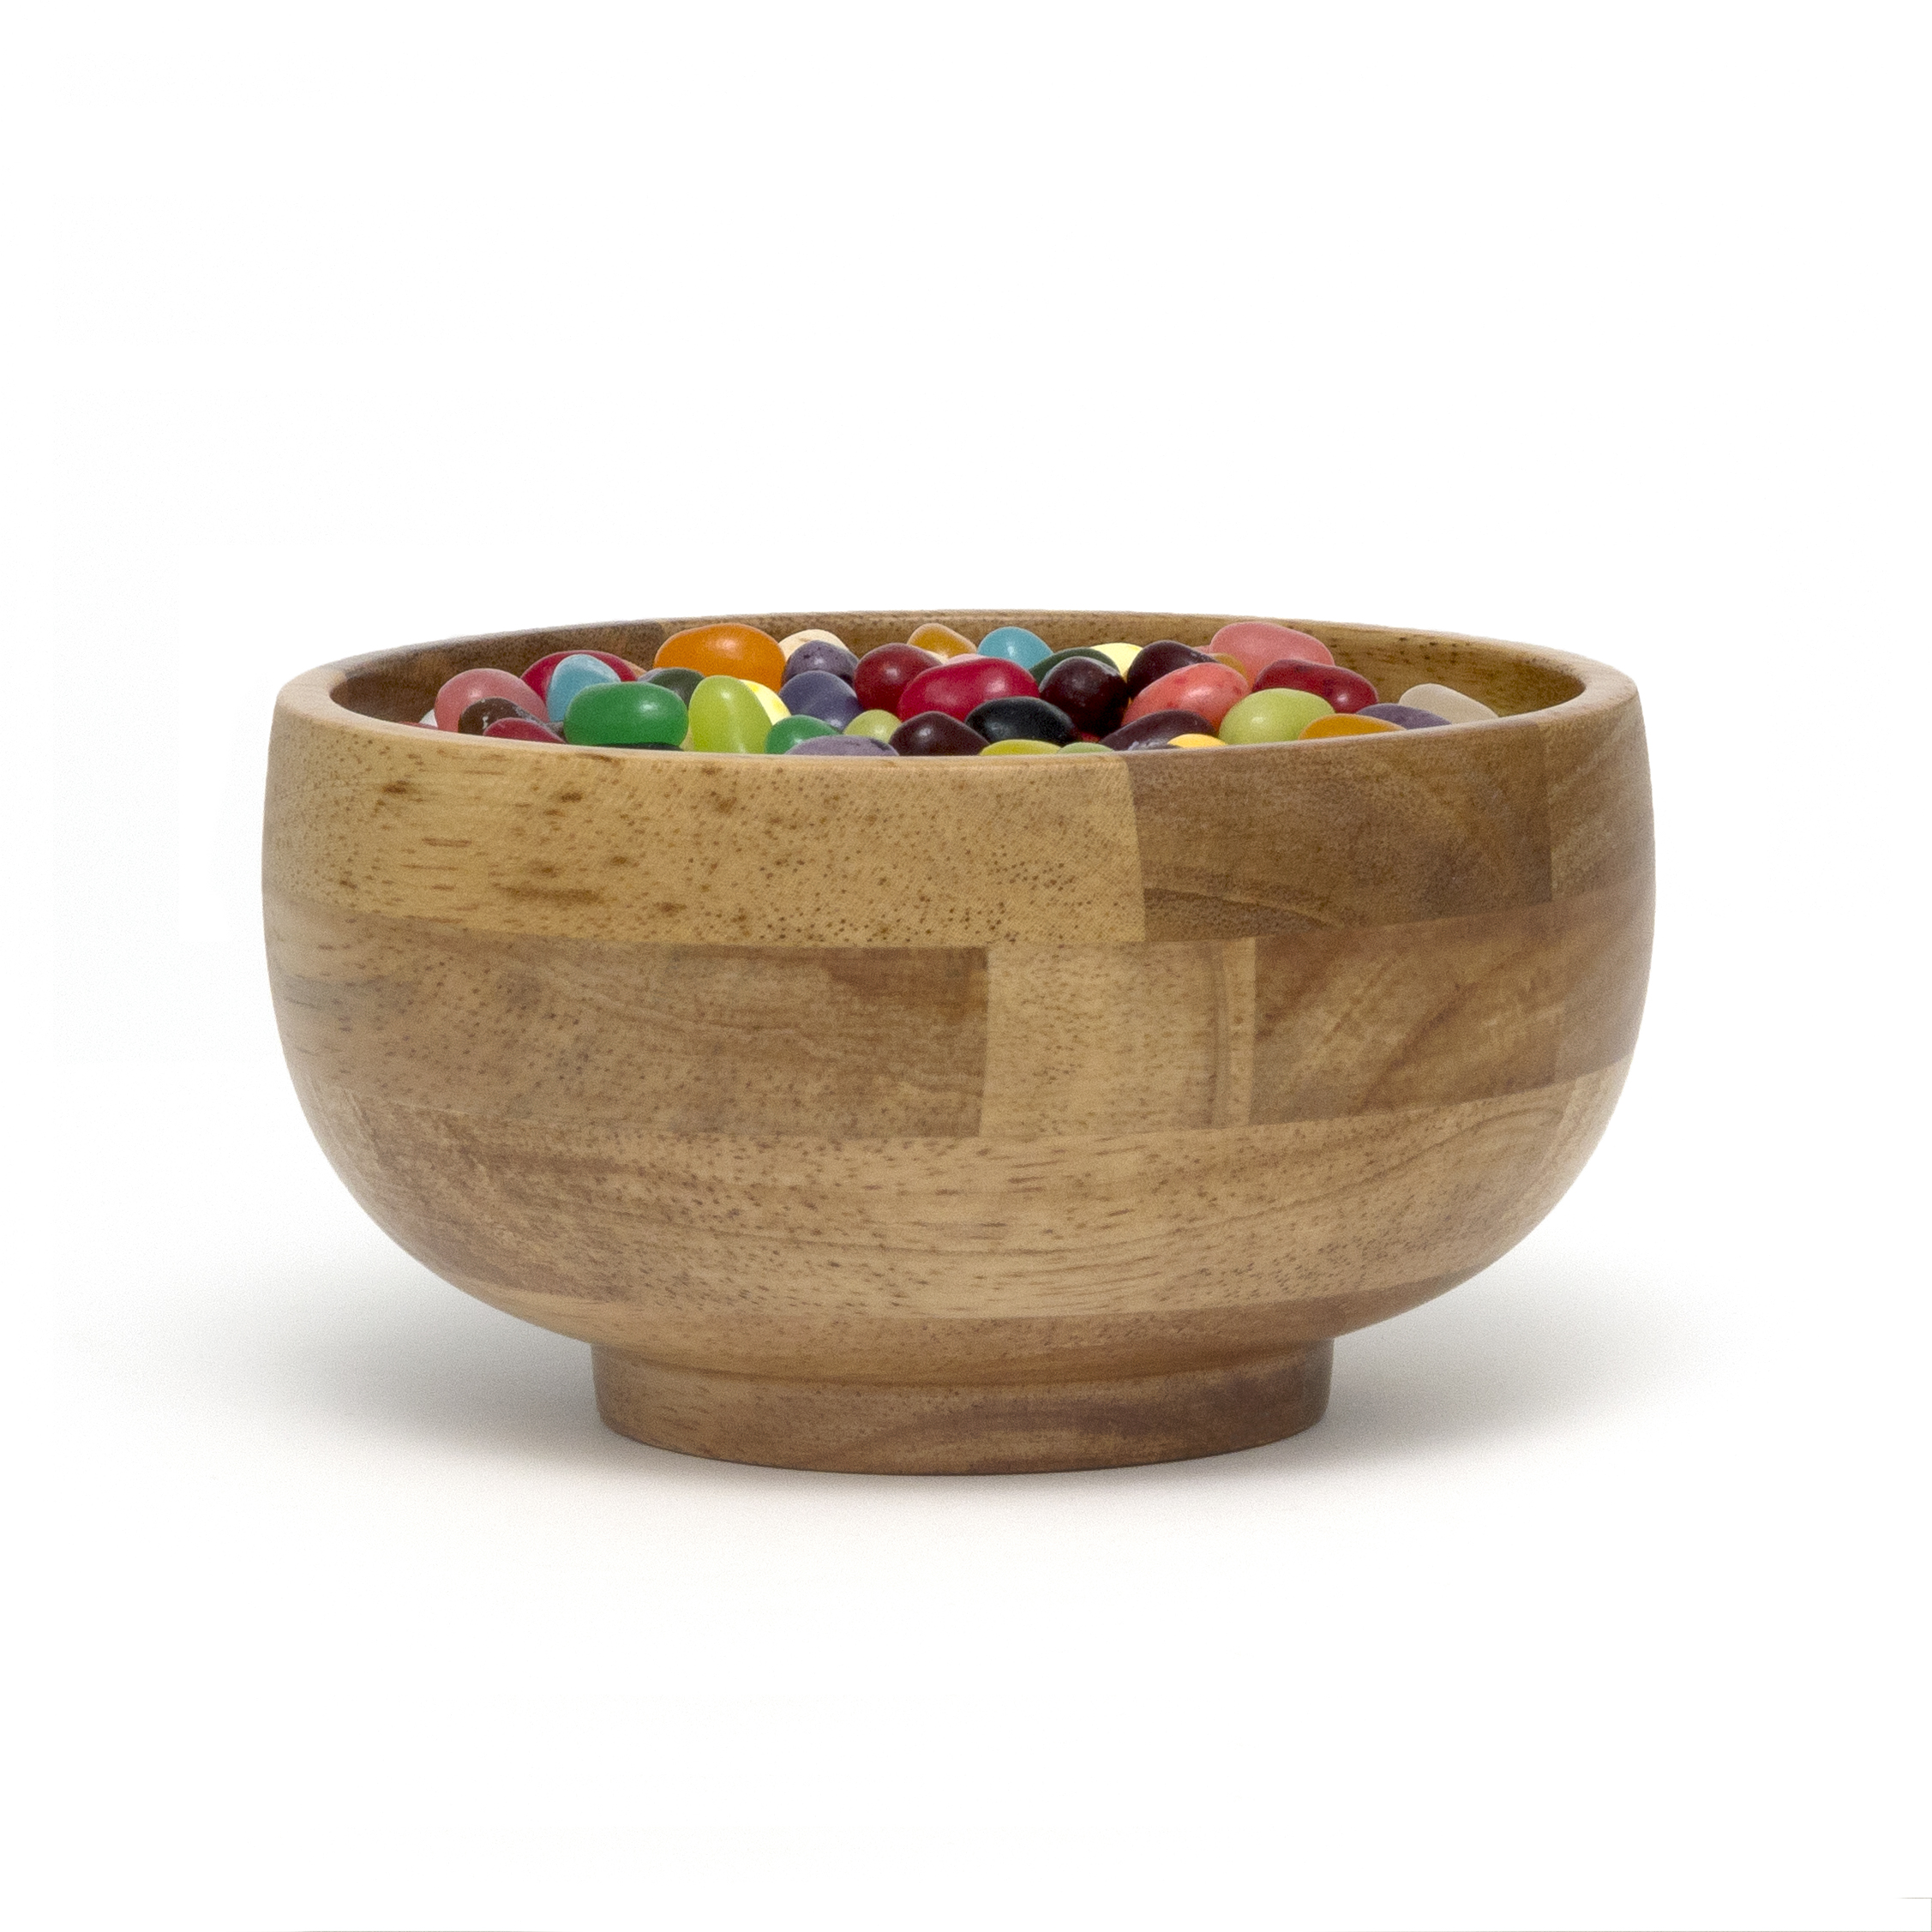 LIPPER 3234 SMALL RICE BOWL SET OF 4 WITH OAK FINISH ARE